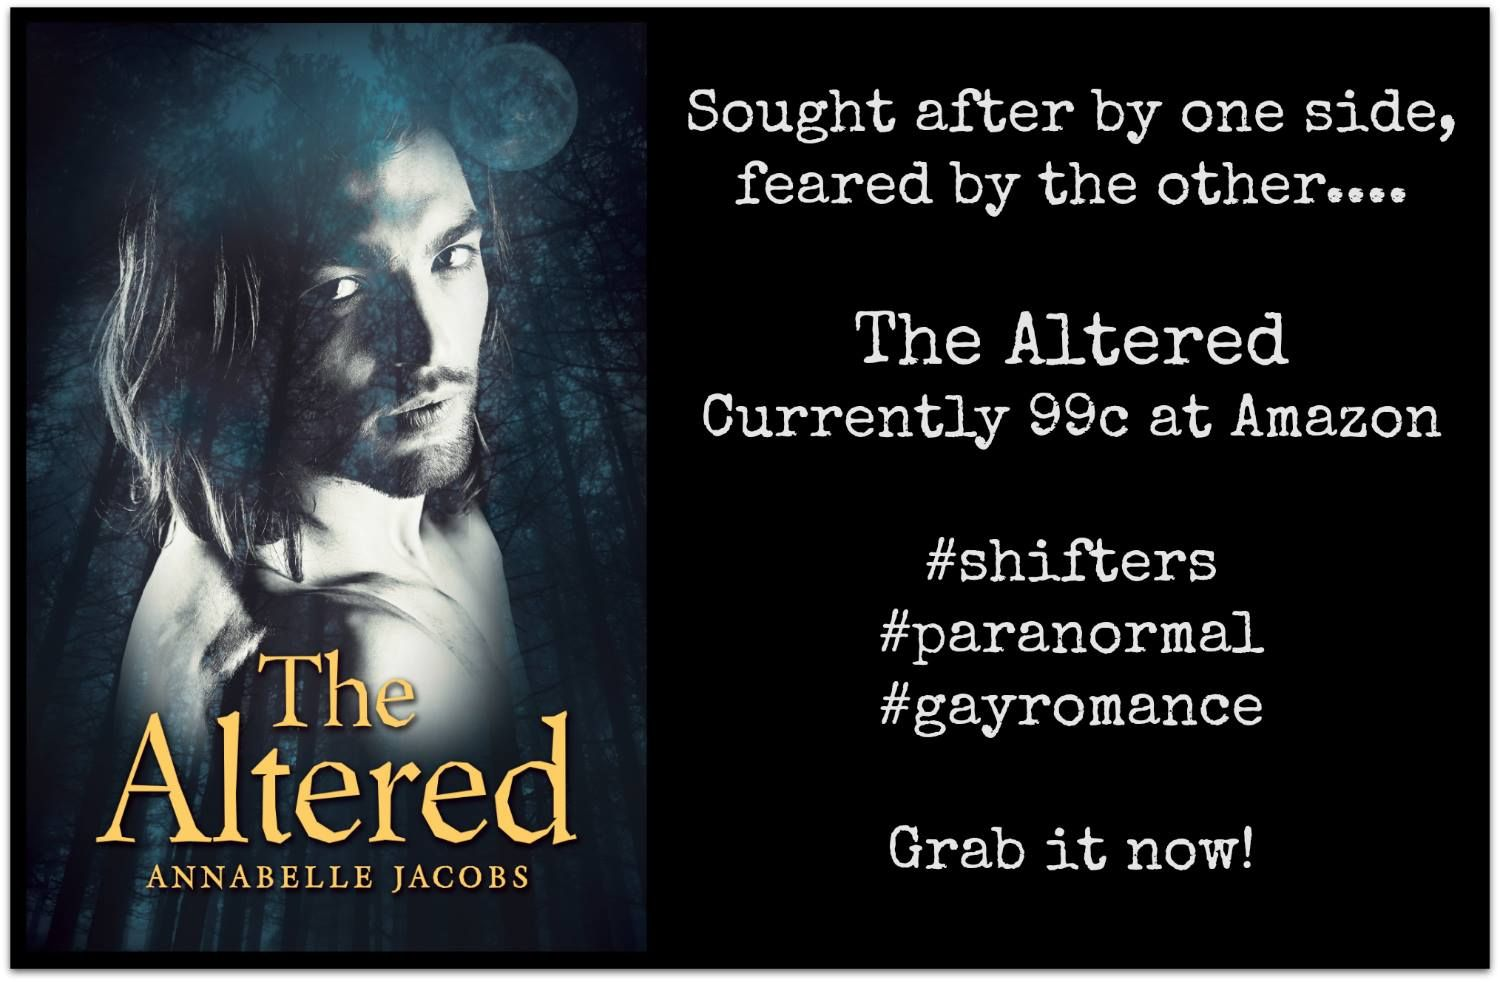 The Altered 2 is released today. Get book 1 for 99c :)